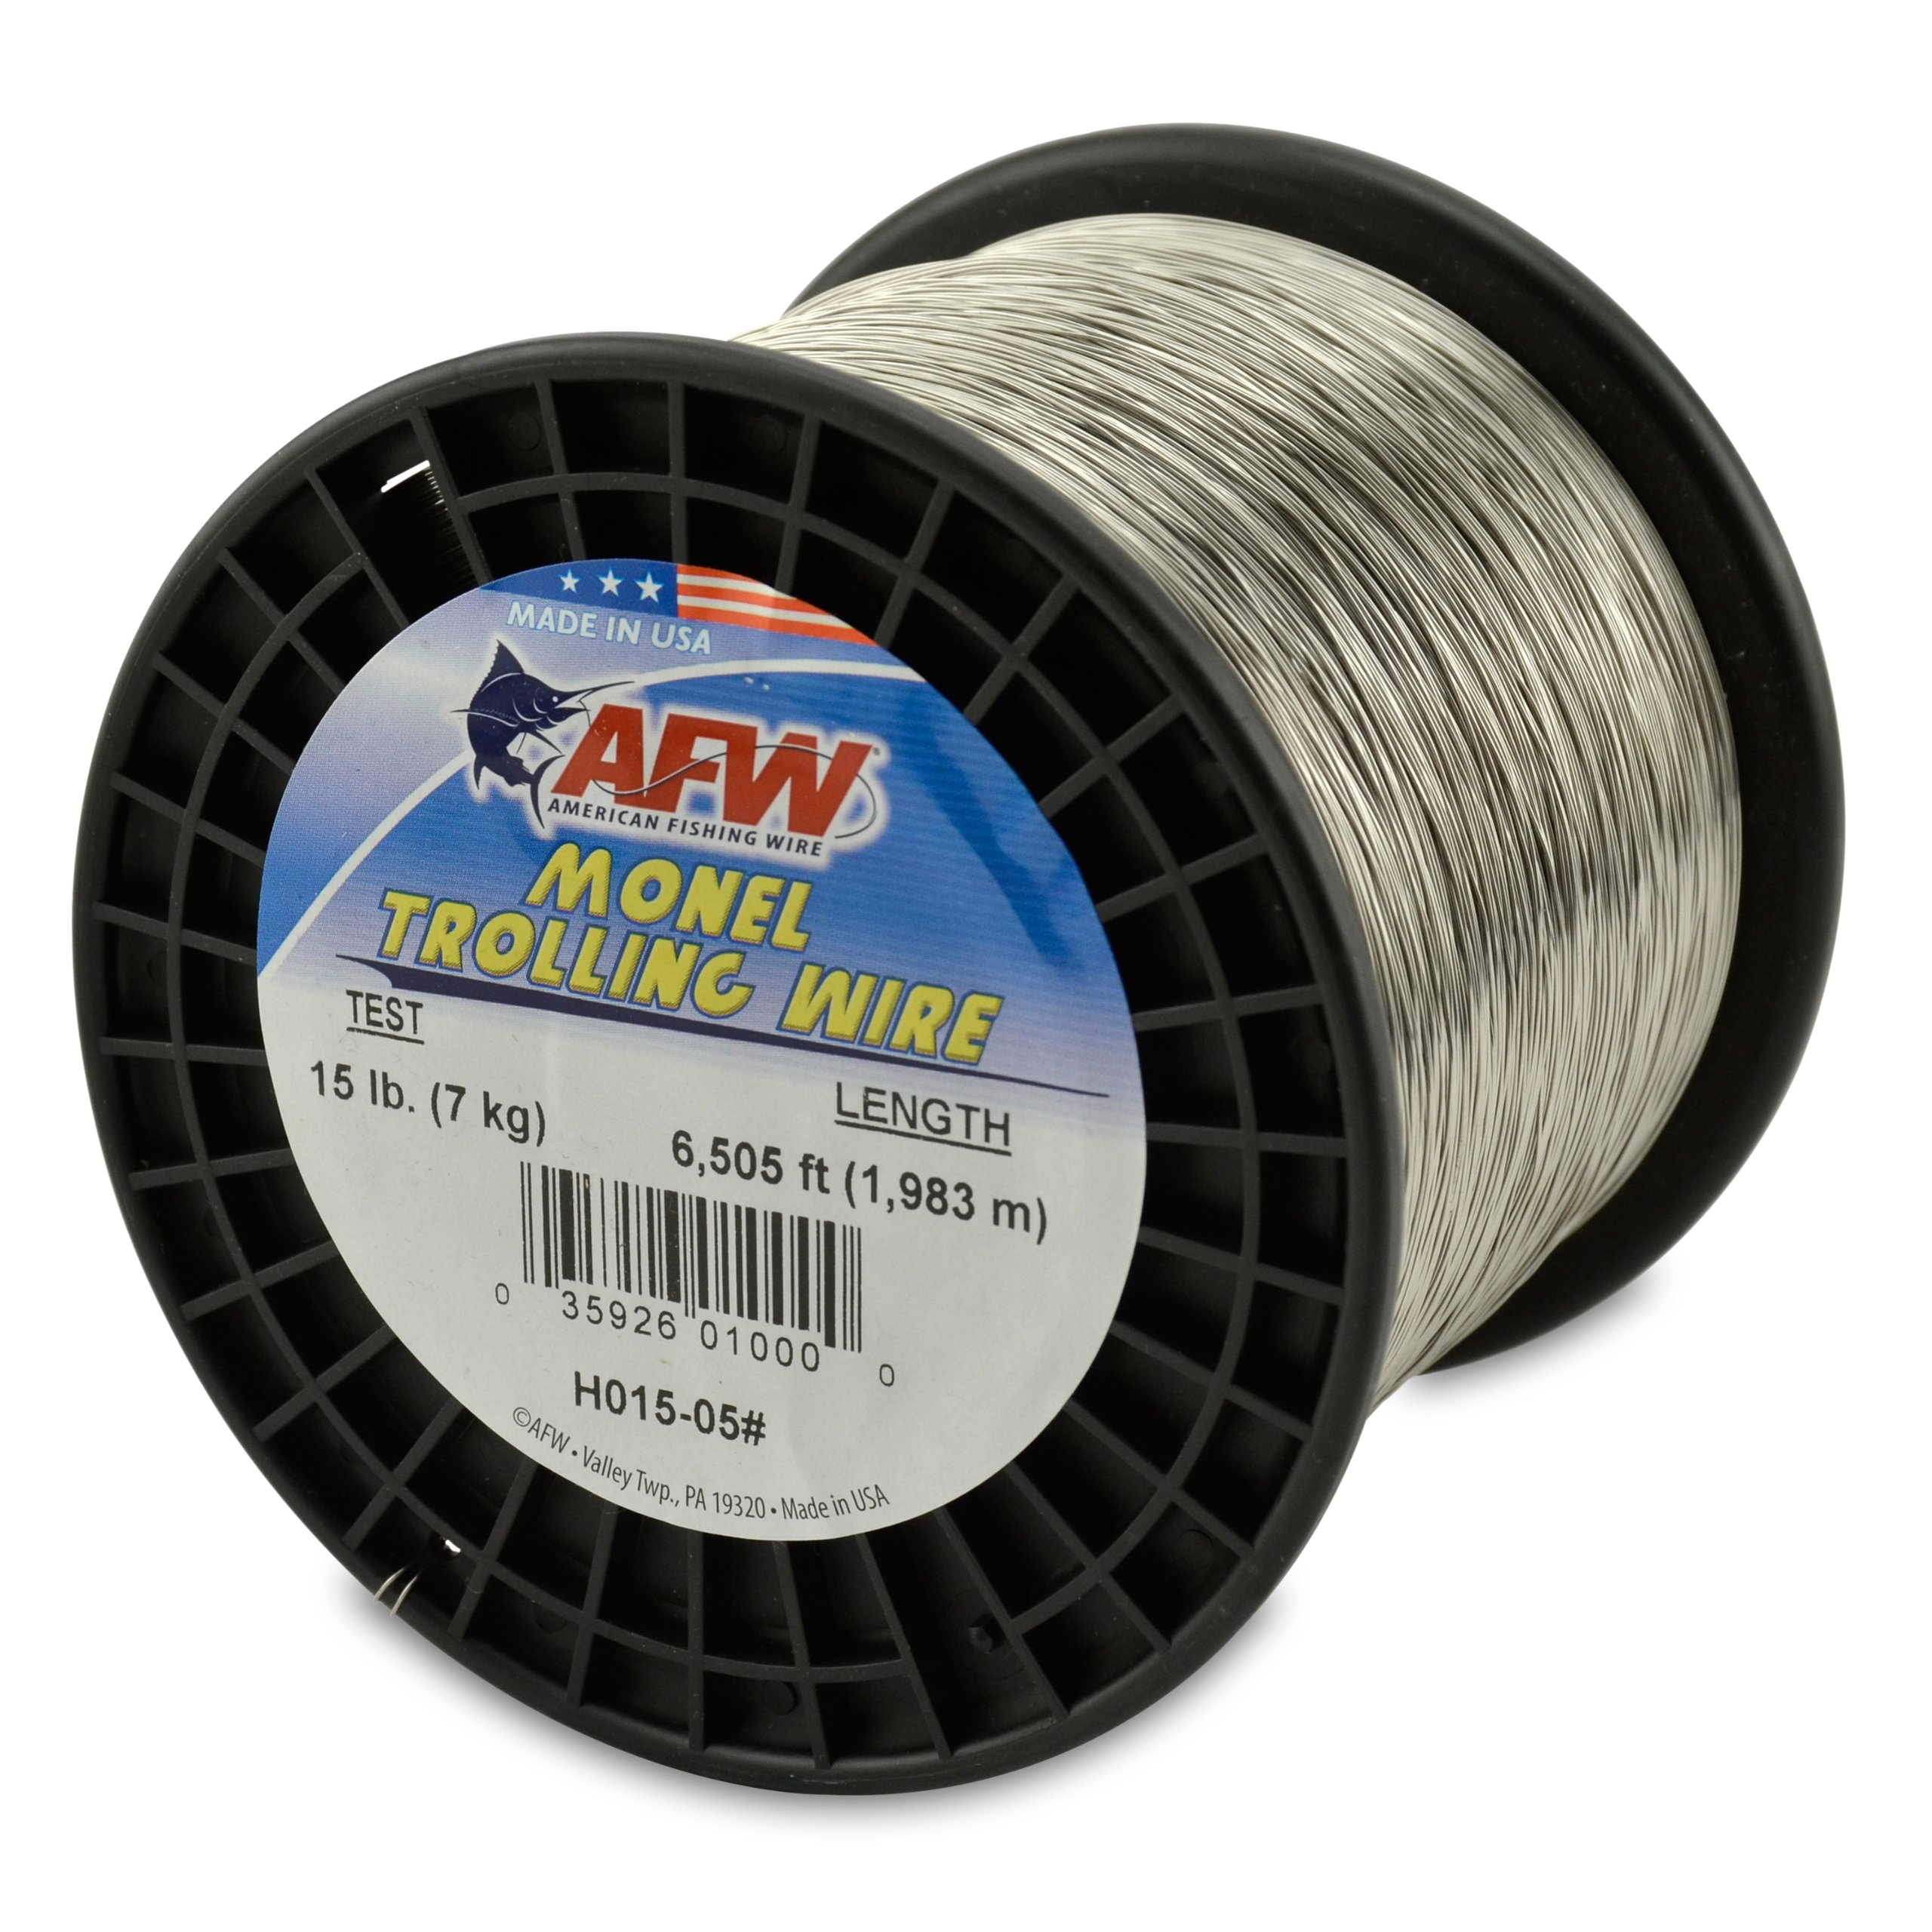 American Fishing Wire Monel Trolling Wire, 15-Pound Test/0.33mm Dia/1982m